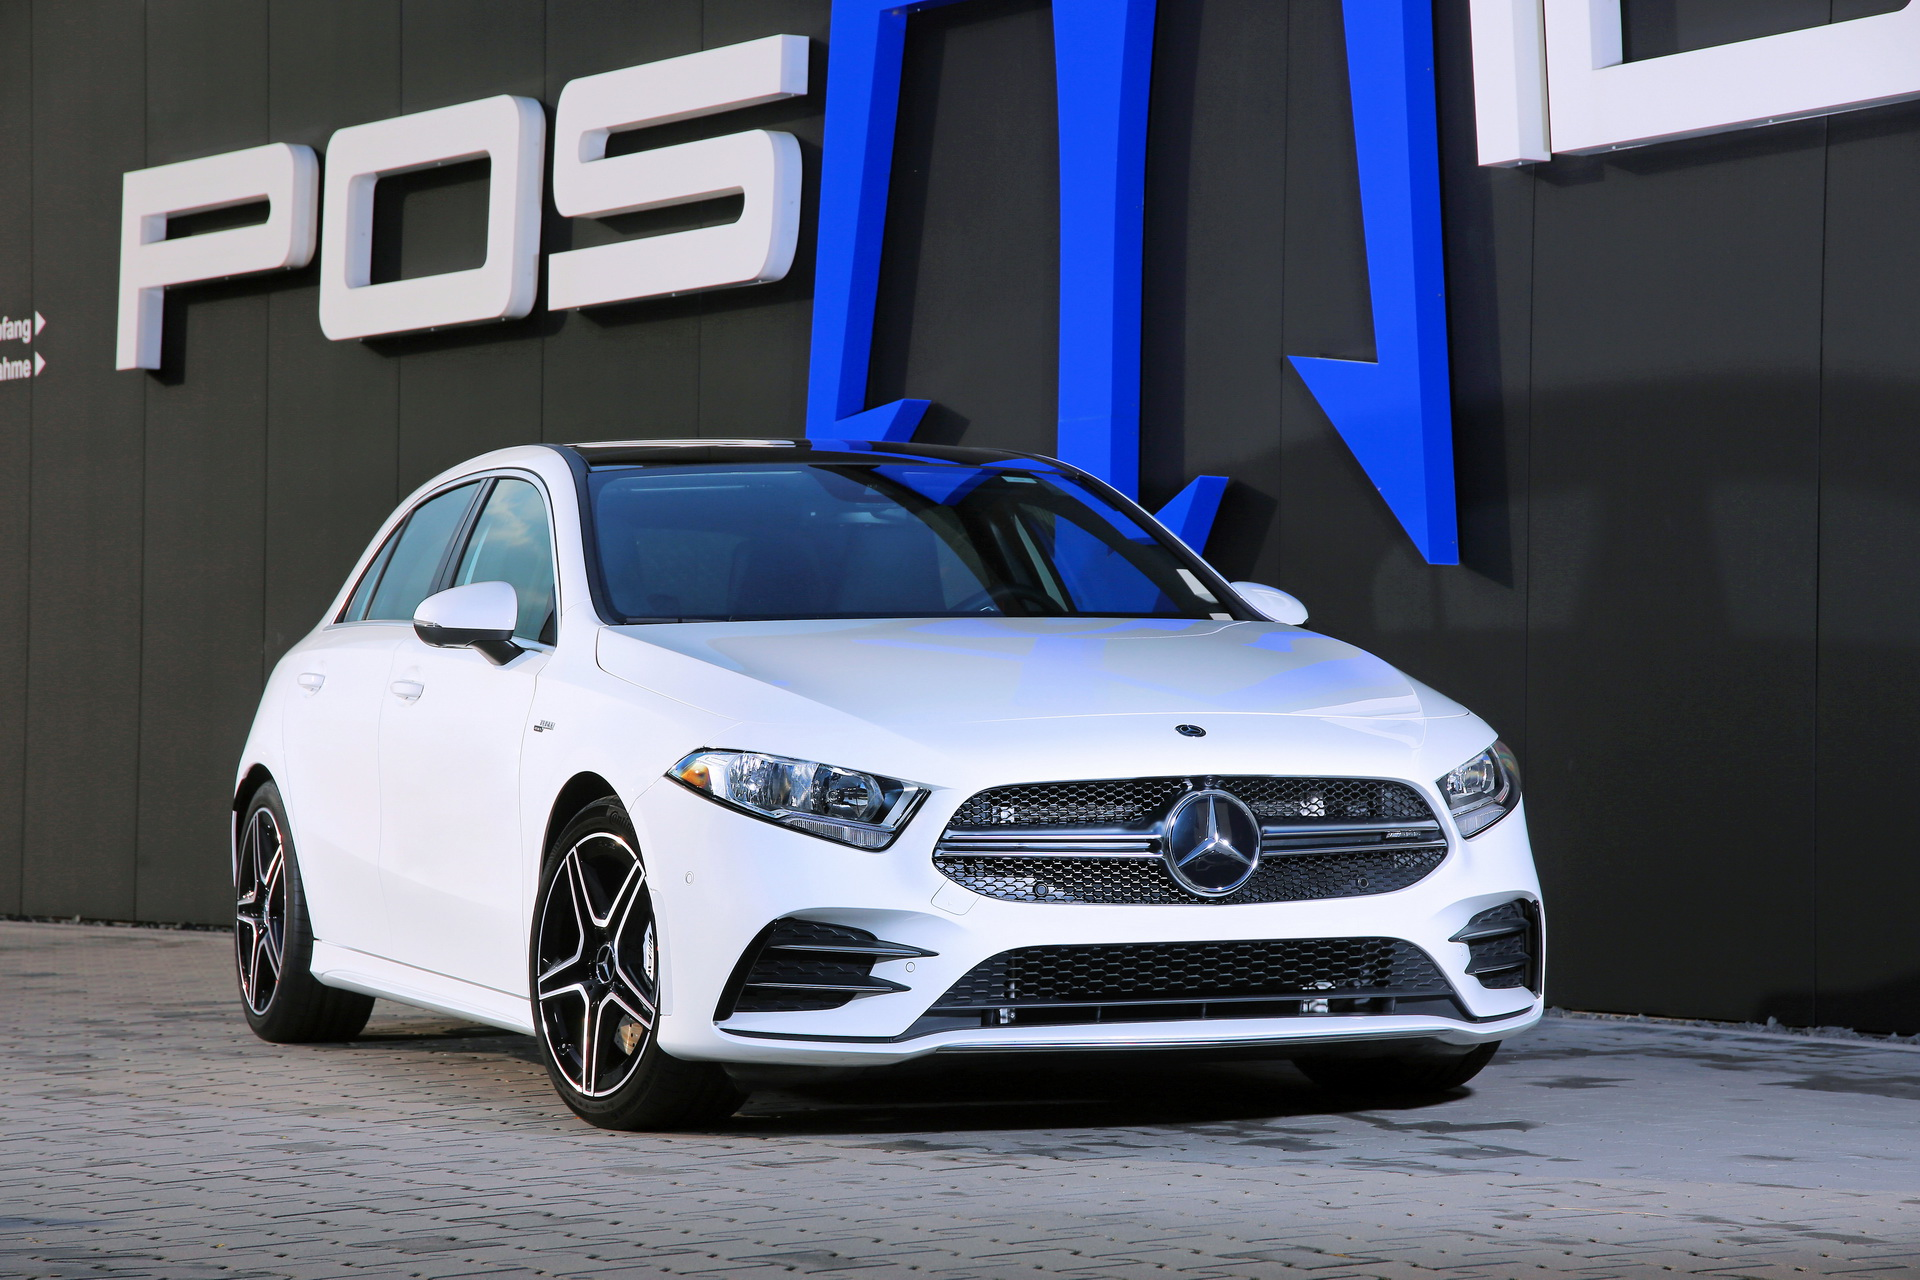 Posaidon did a wonderful job last year tuning the Mercedes-AMG A45 S to a neck-snapping 525 PS (518 hp / 386 kW) and 600 Nm (443 lb-ft) of torque, and now, the German tuner helps the junior A35 model to keep up.